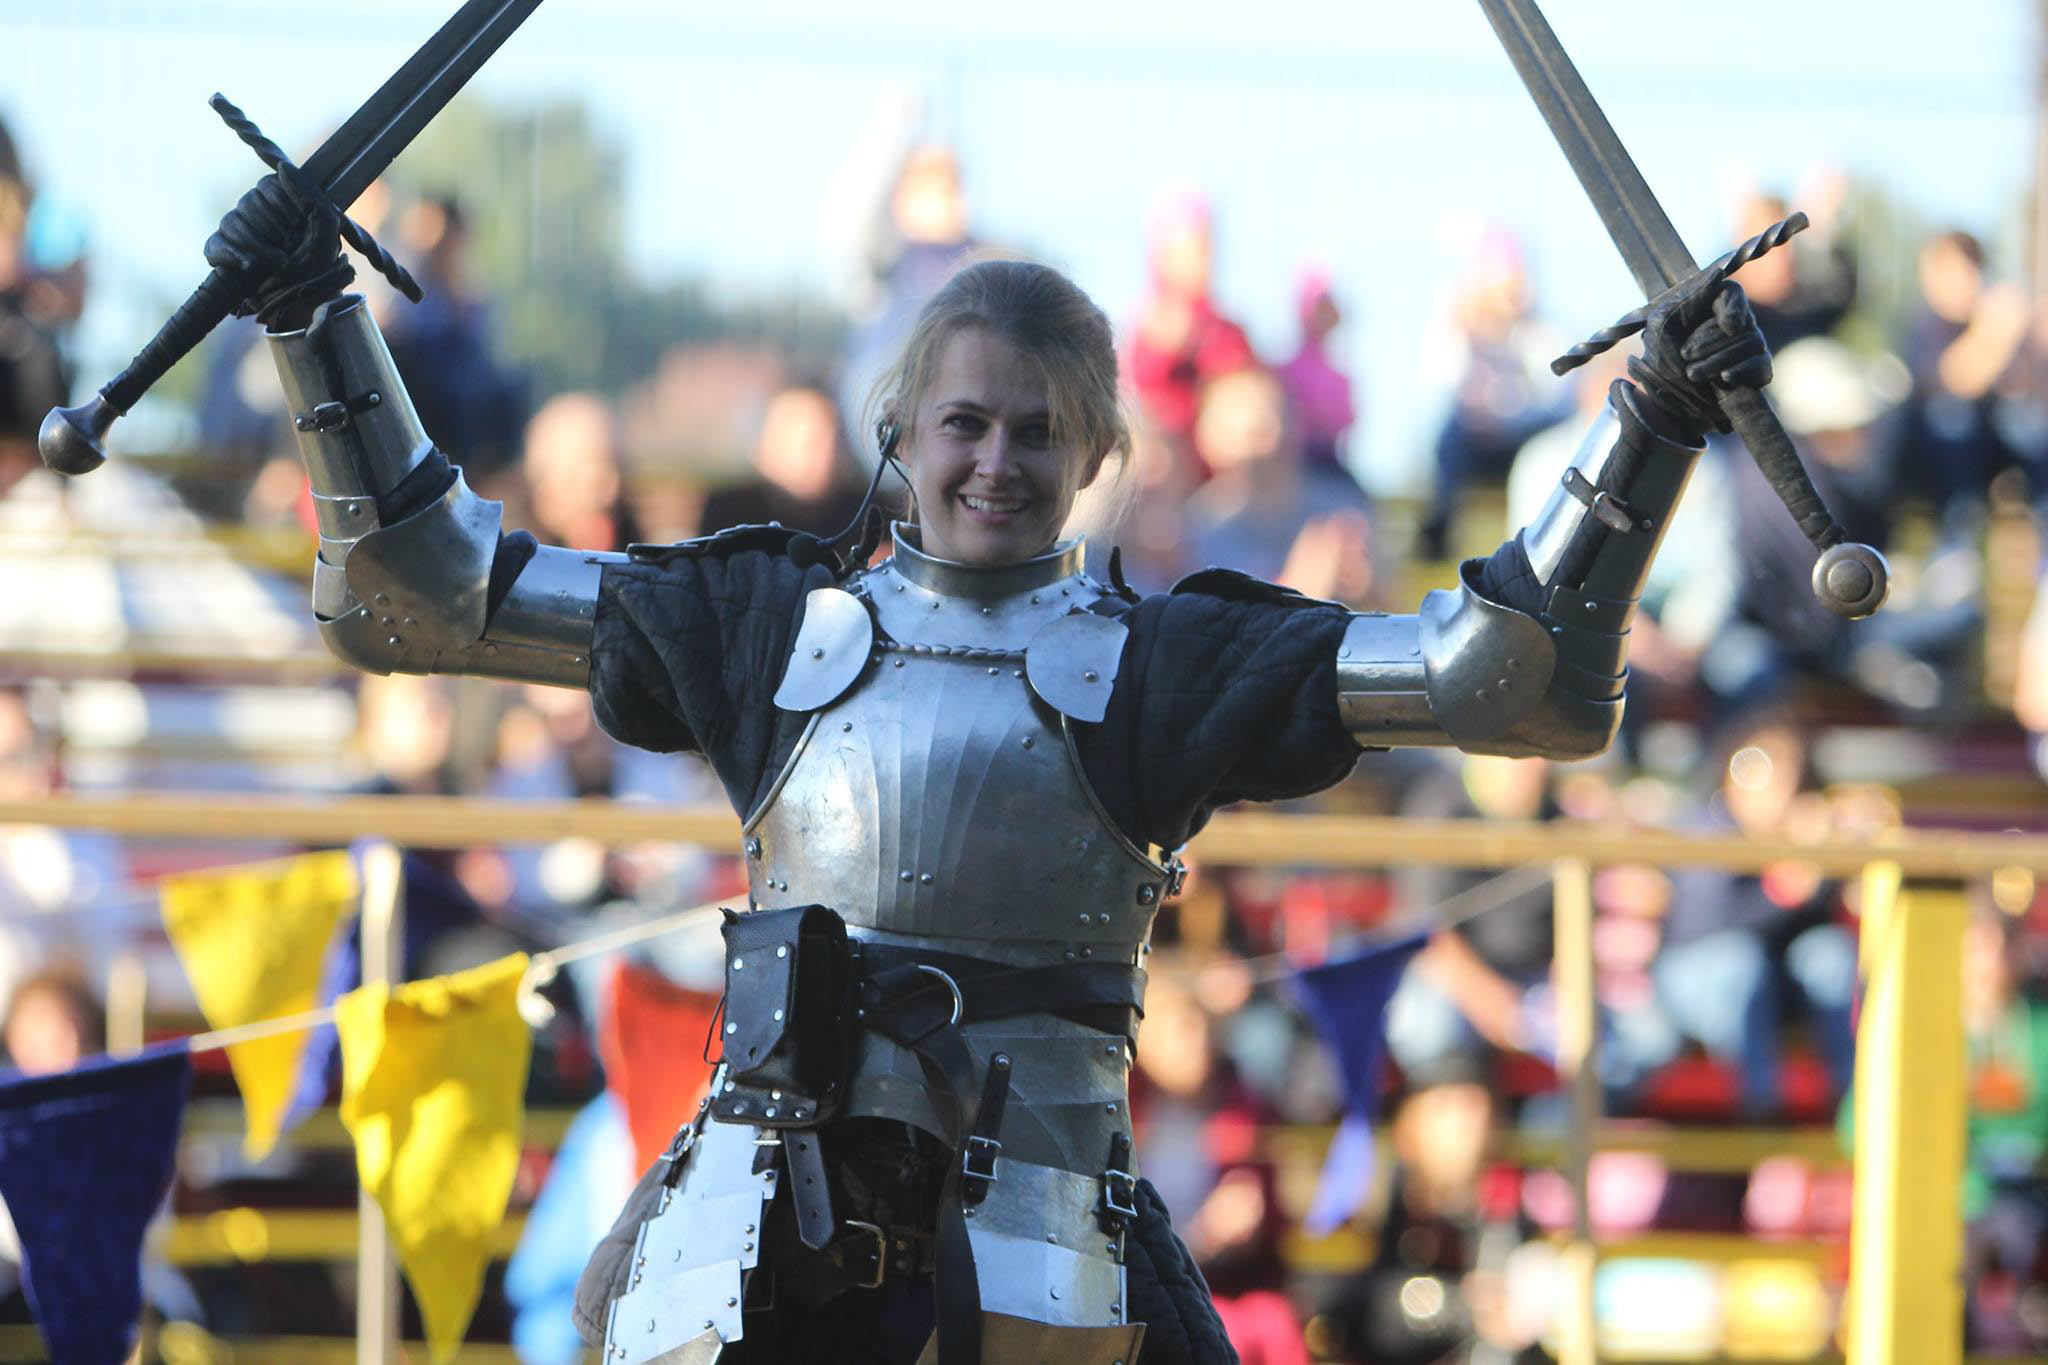 You can see knights in shining armor at the Renaissance Faire every weekend in October.